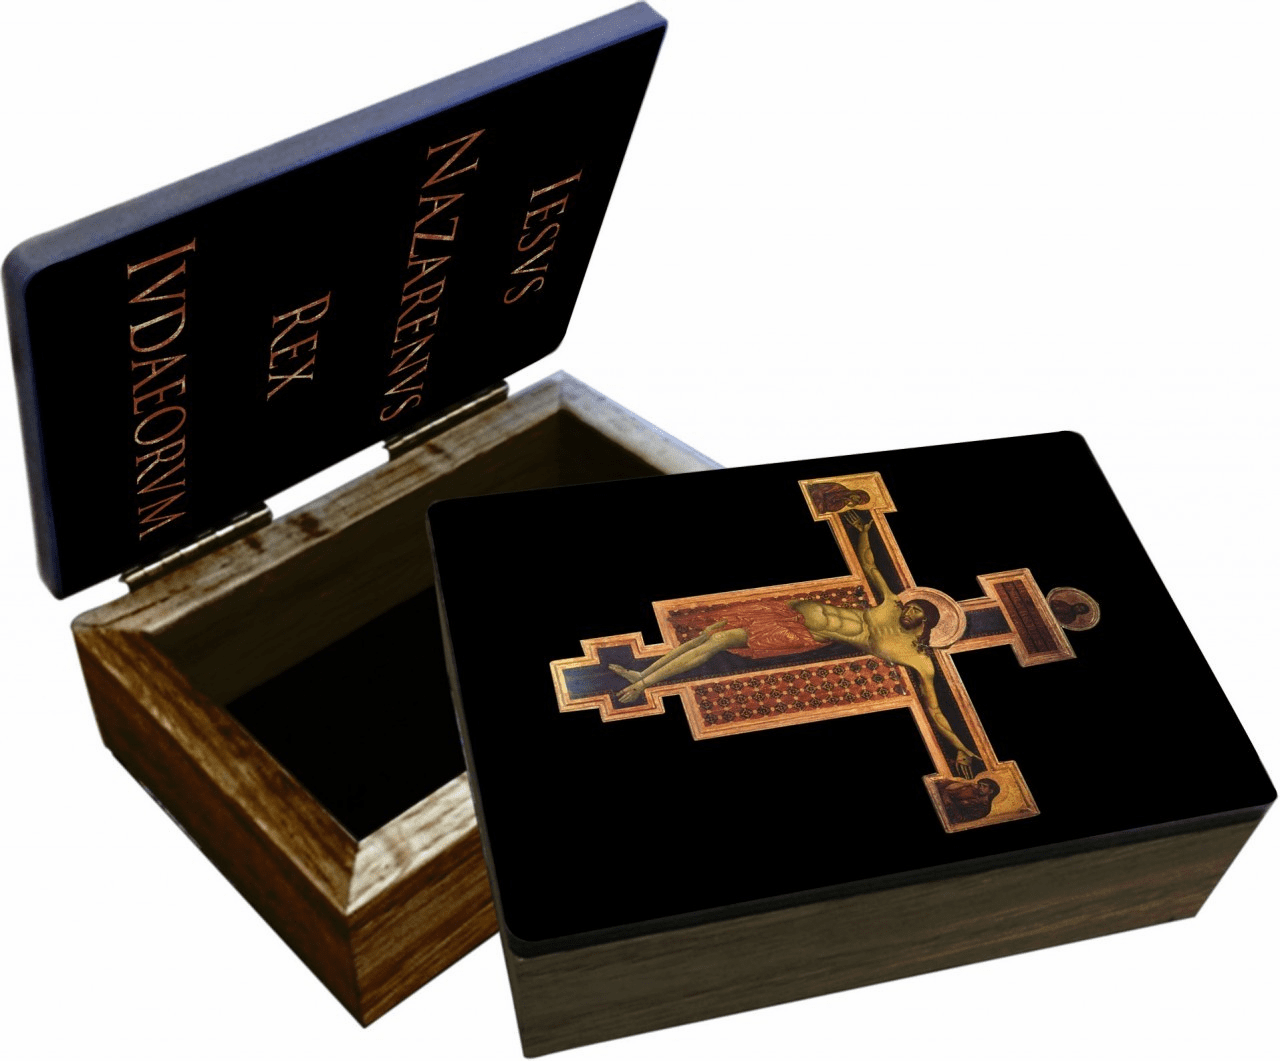 Nelson's Byzantine Crucifix Wooden Rosary and Keepsake Box